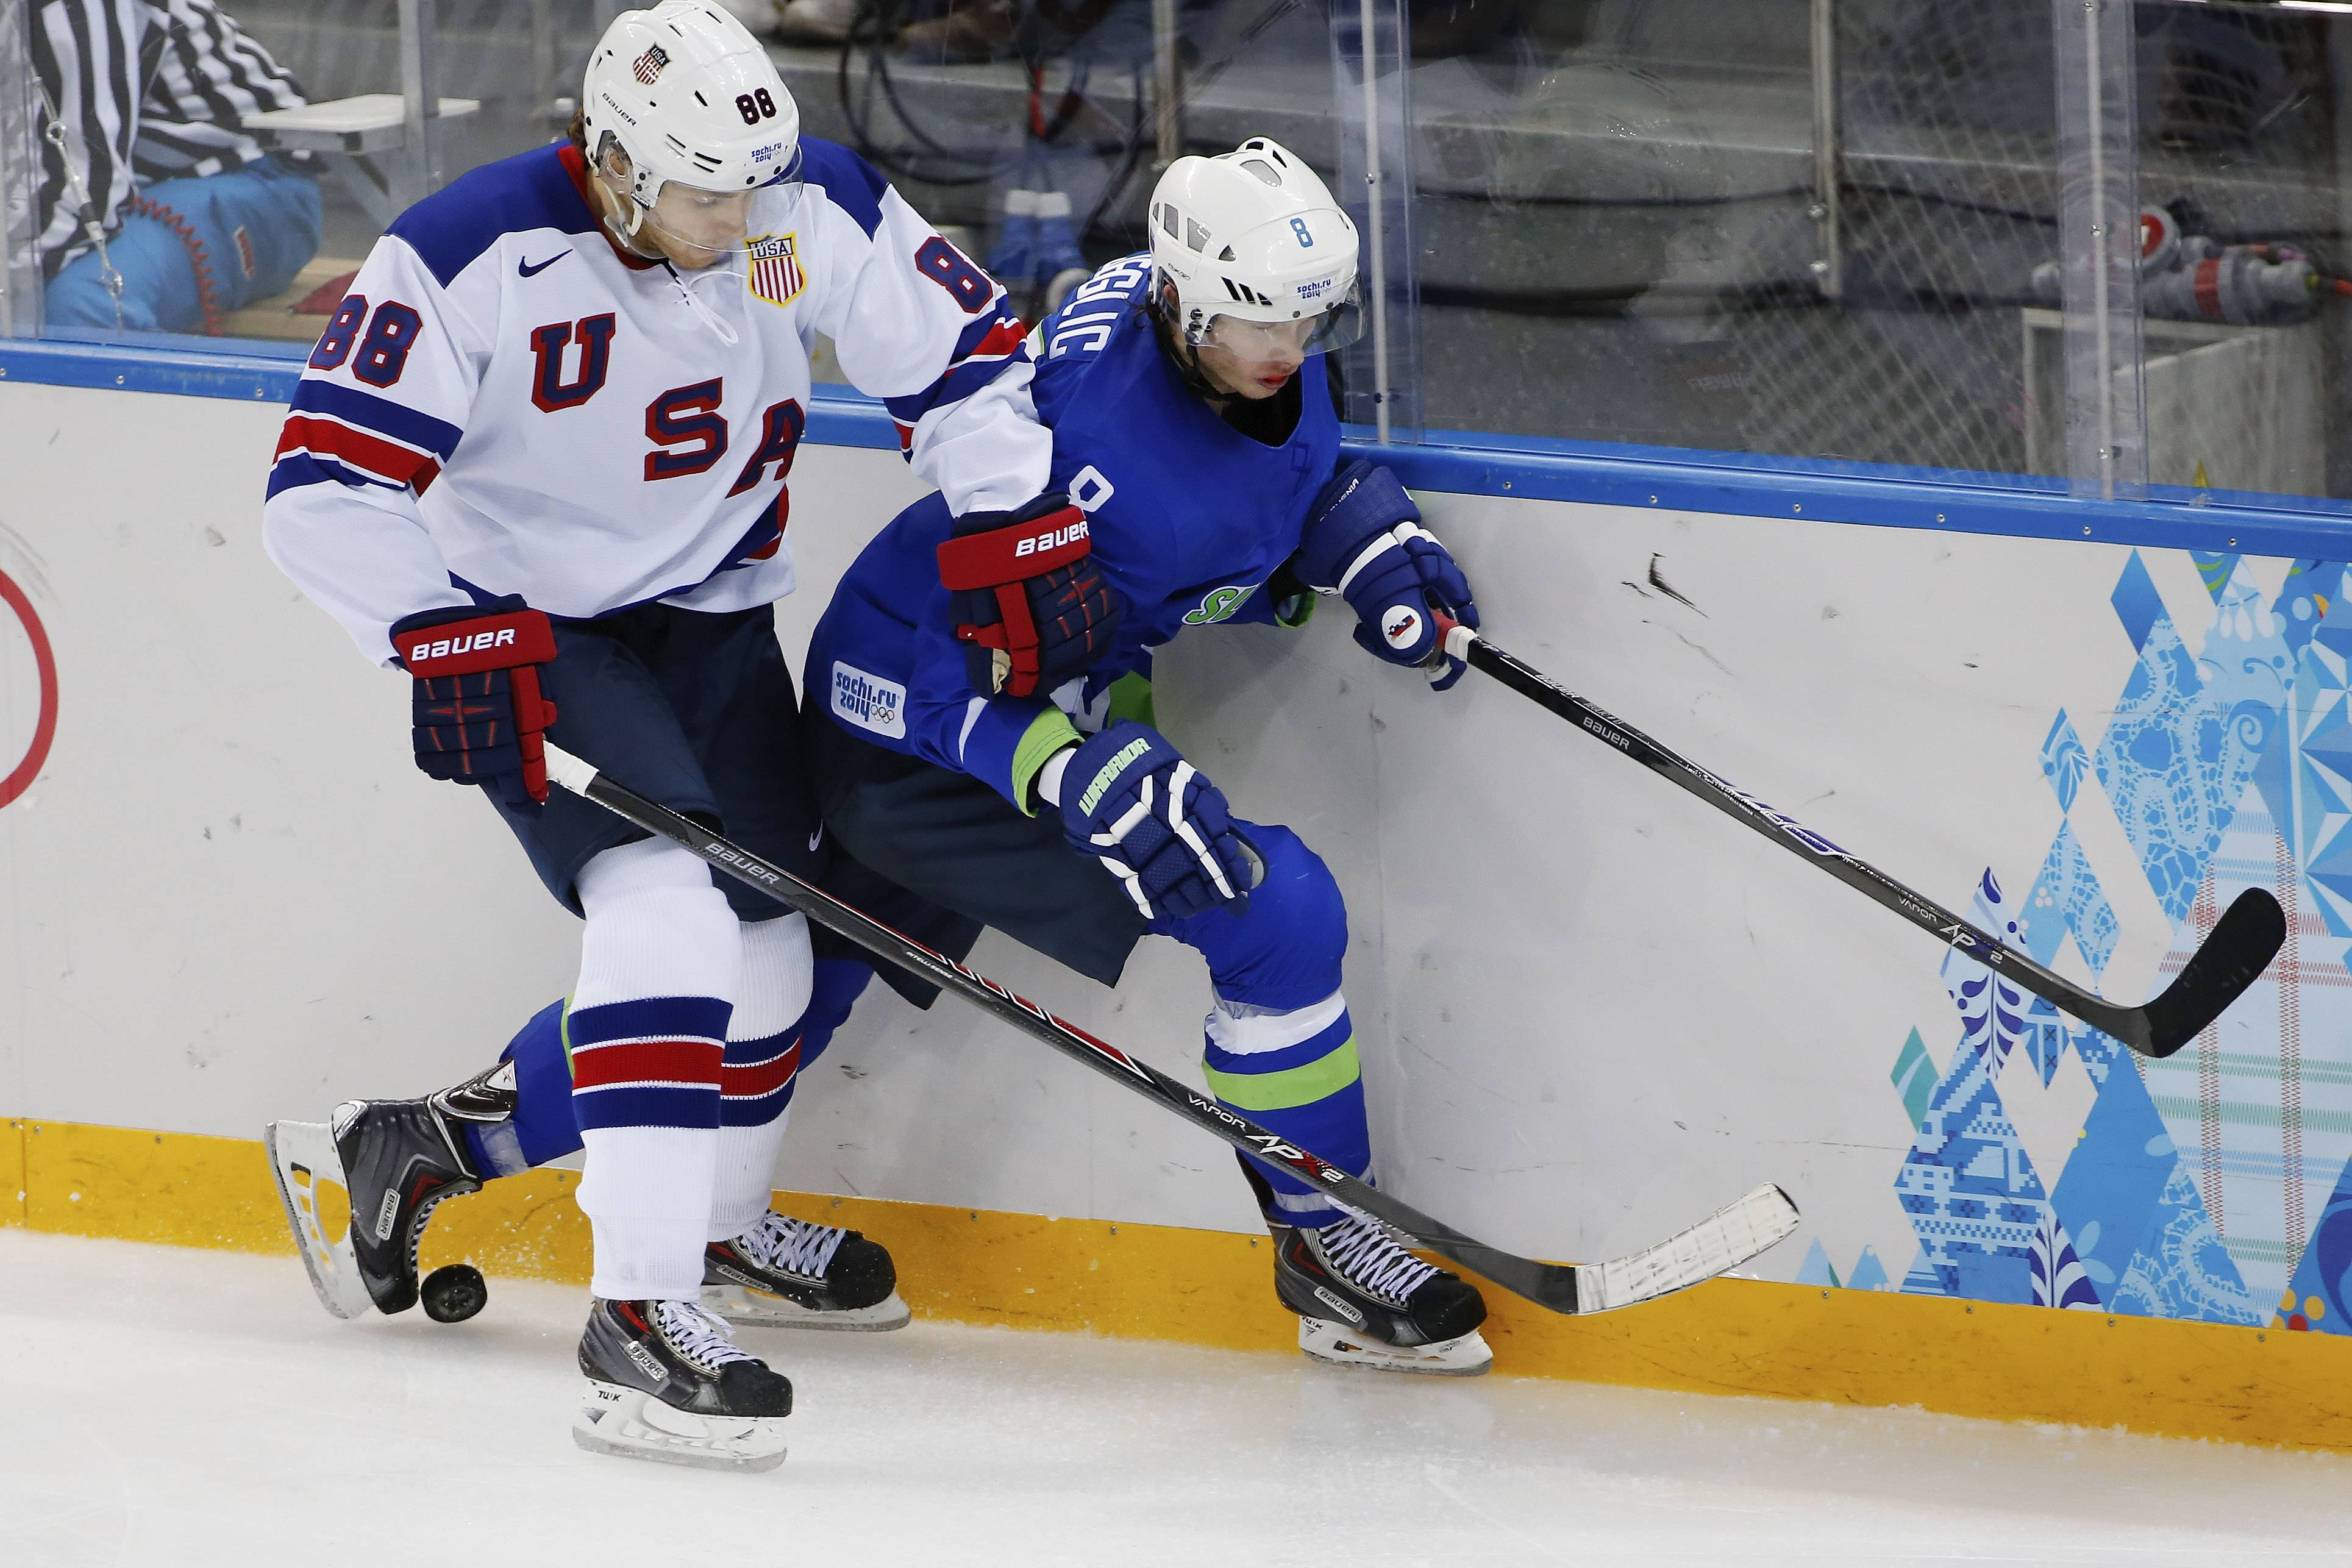 USA forward Patrick Kane pins Slovenia forward Ziga Jeglic against the boards during the 2014 Winter Olympics men's ice hockey game at Shayba Arena Sunday, Feb. 16, 2014, in Sochi, Russia.